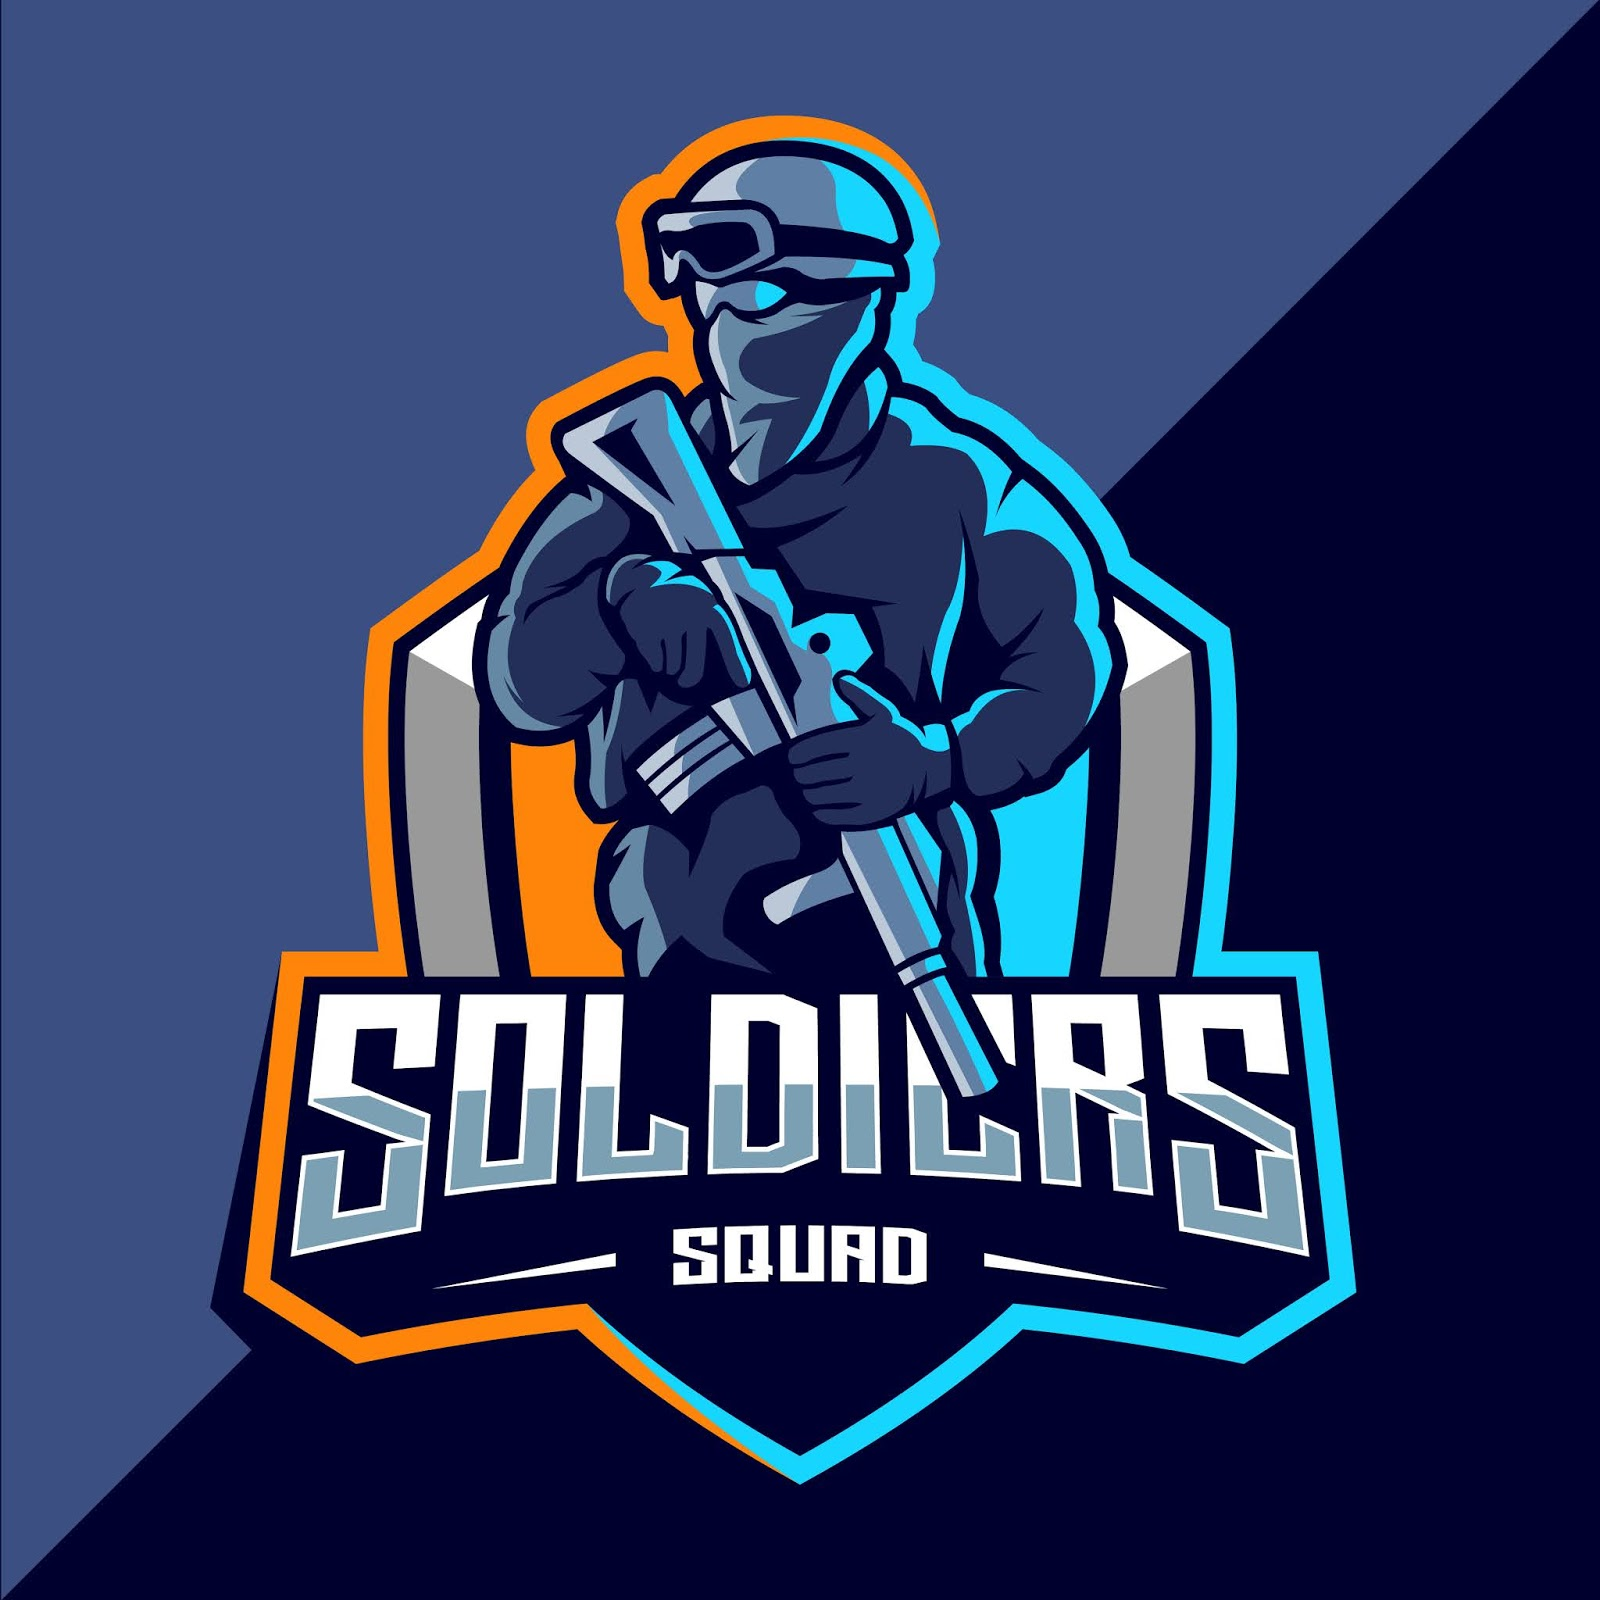 Soldier Mascot Esport Logo Funny Free Download Vector CDR, AI, EPS and PNG Formats